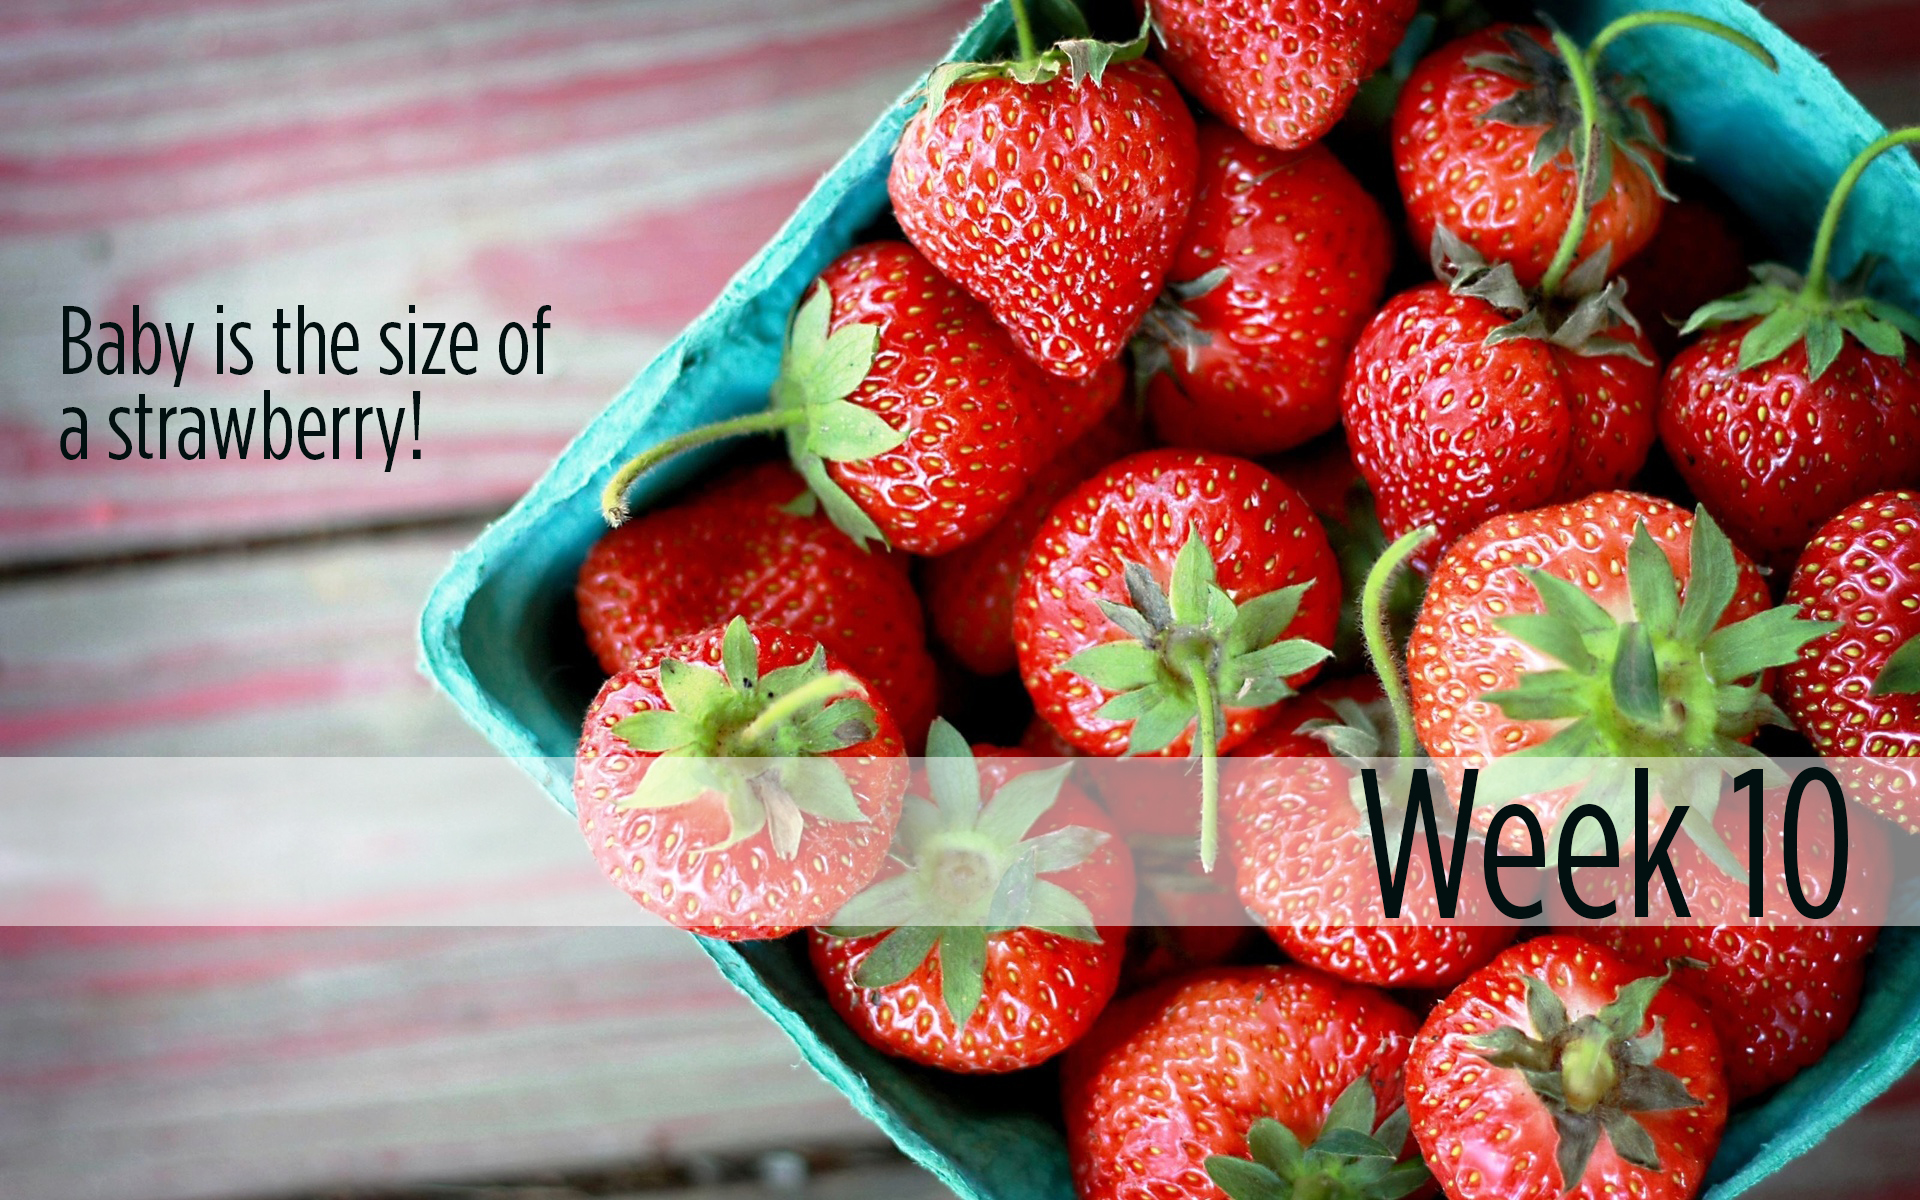 10 weeks: Baby is the size of a strawberry